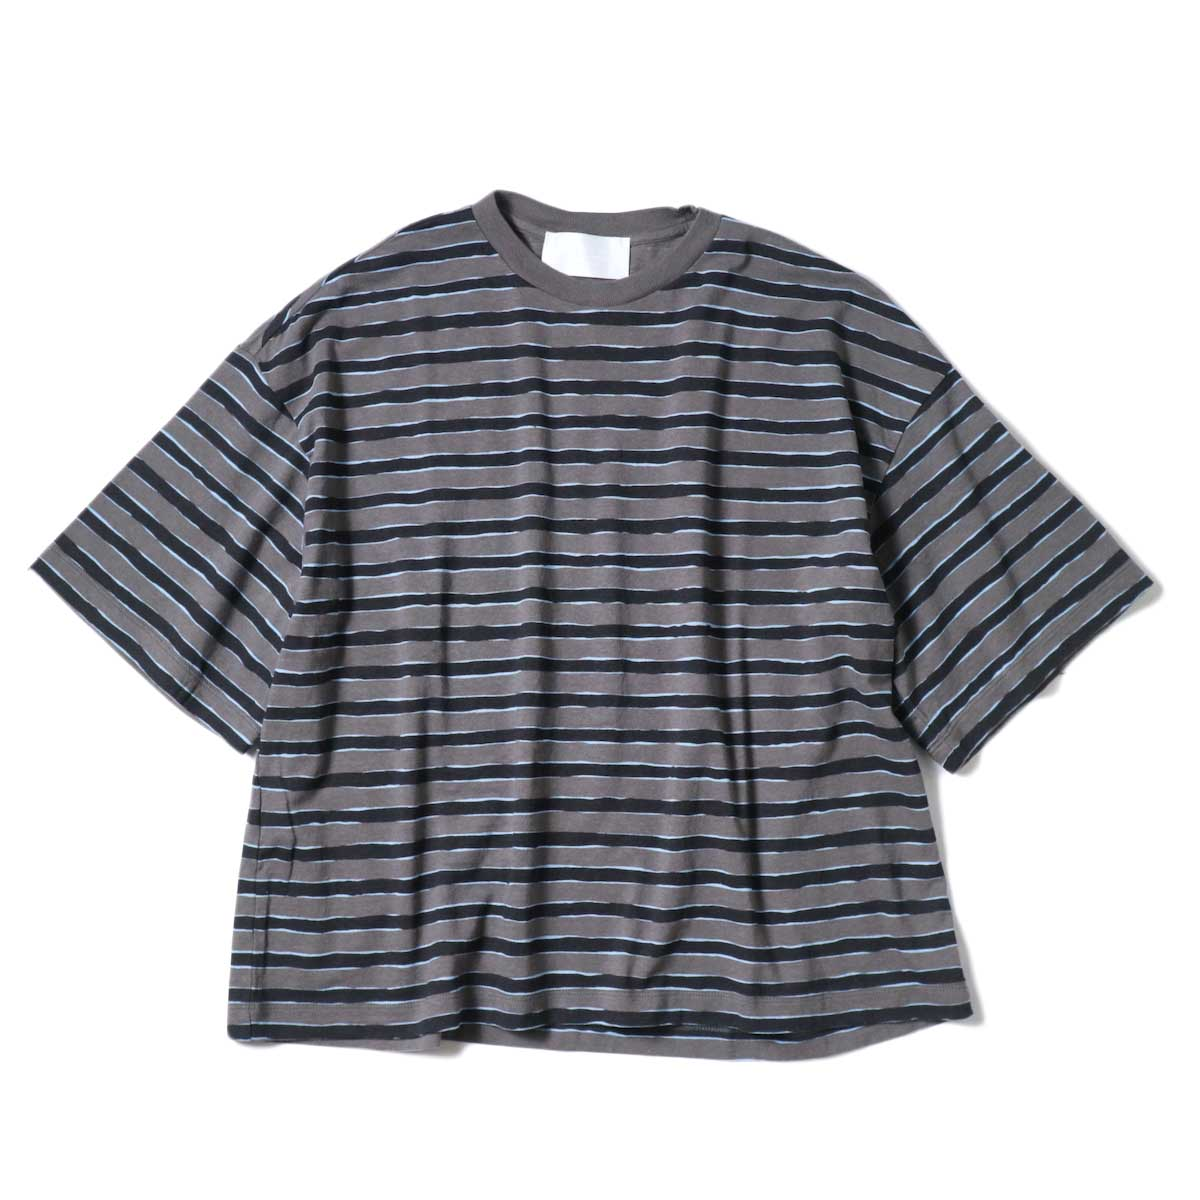 (Ladie's) UNUSED / US2022 Border S/S Tee (Charcoal × Black)